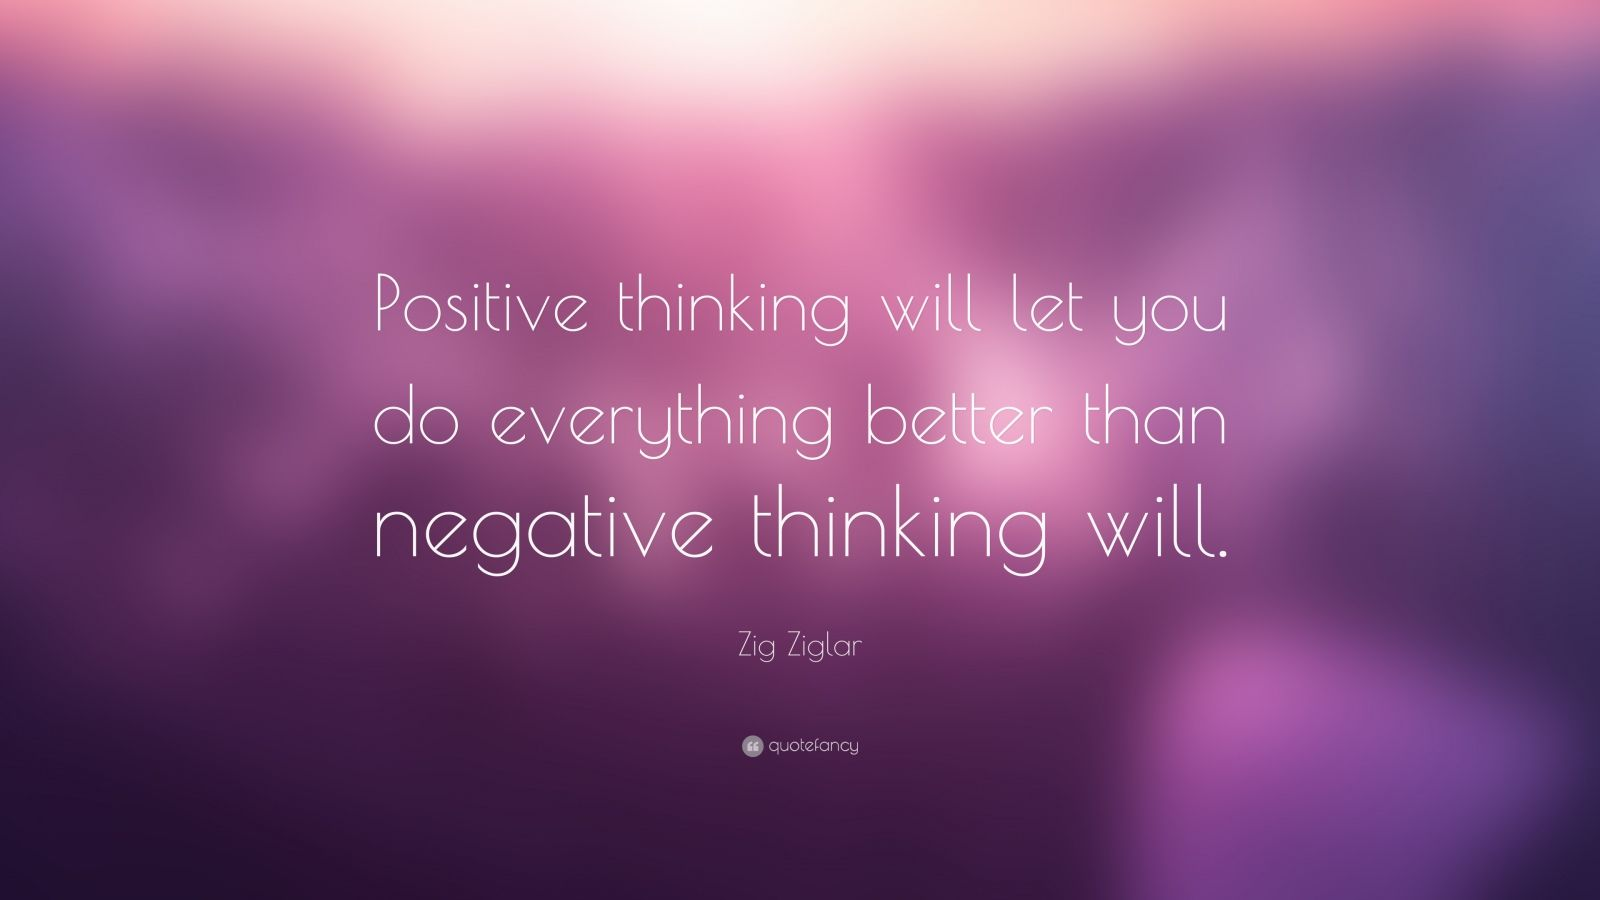 positive quotes 53 quotefancy positive quotes positive thinking will let you do everything better than negative thinking will